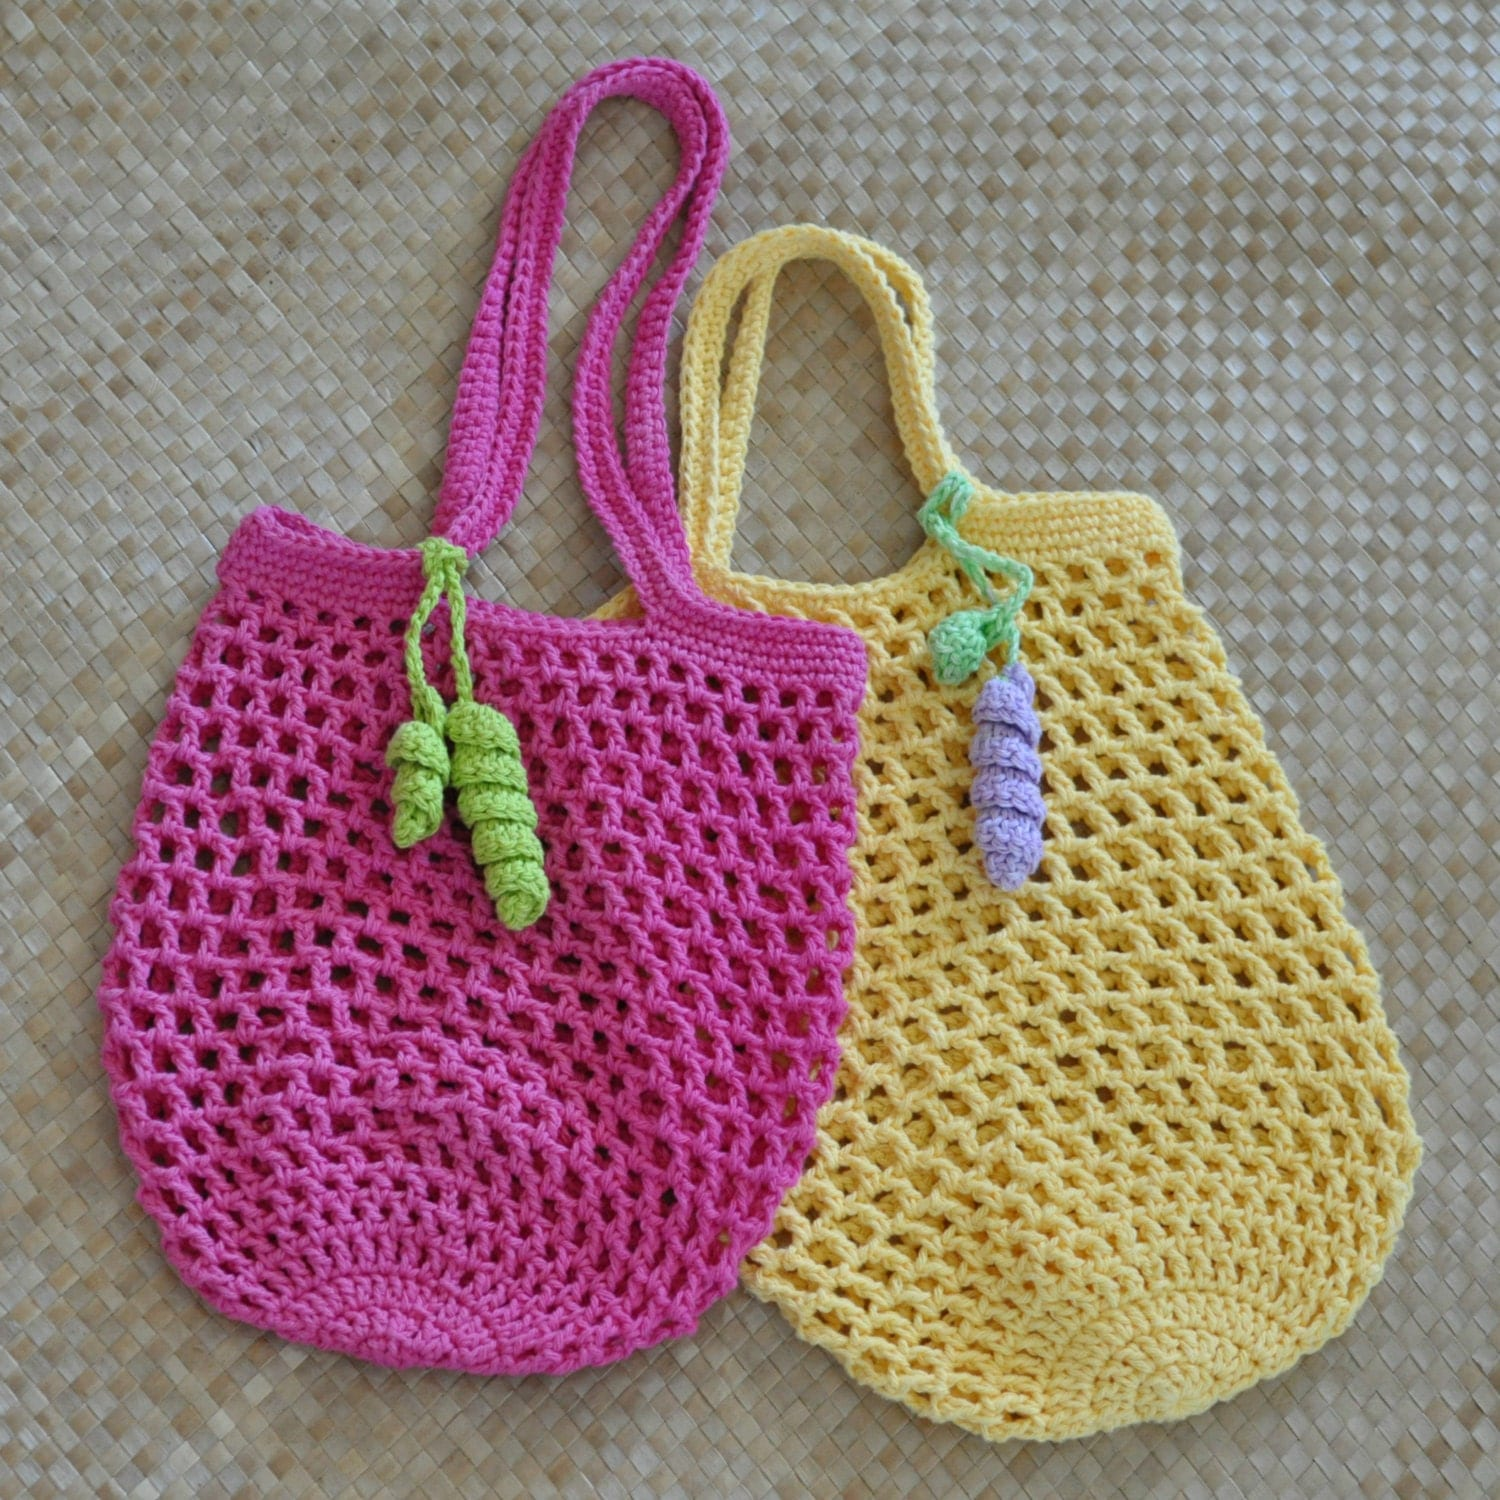 Crochet Small Tote Bag Pattern : PDF Small Jemmas Market Bag N Mesh Tote Crochet Pattern